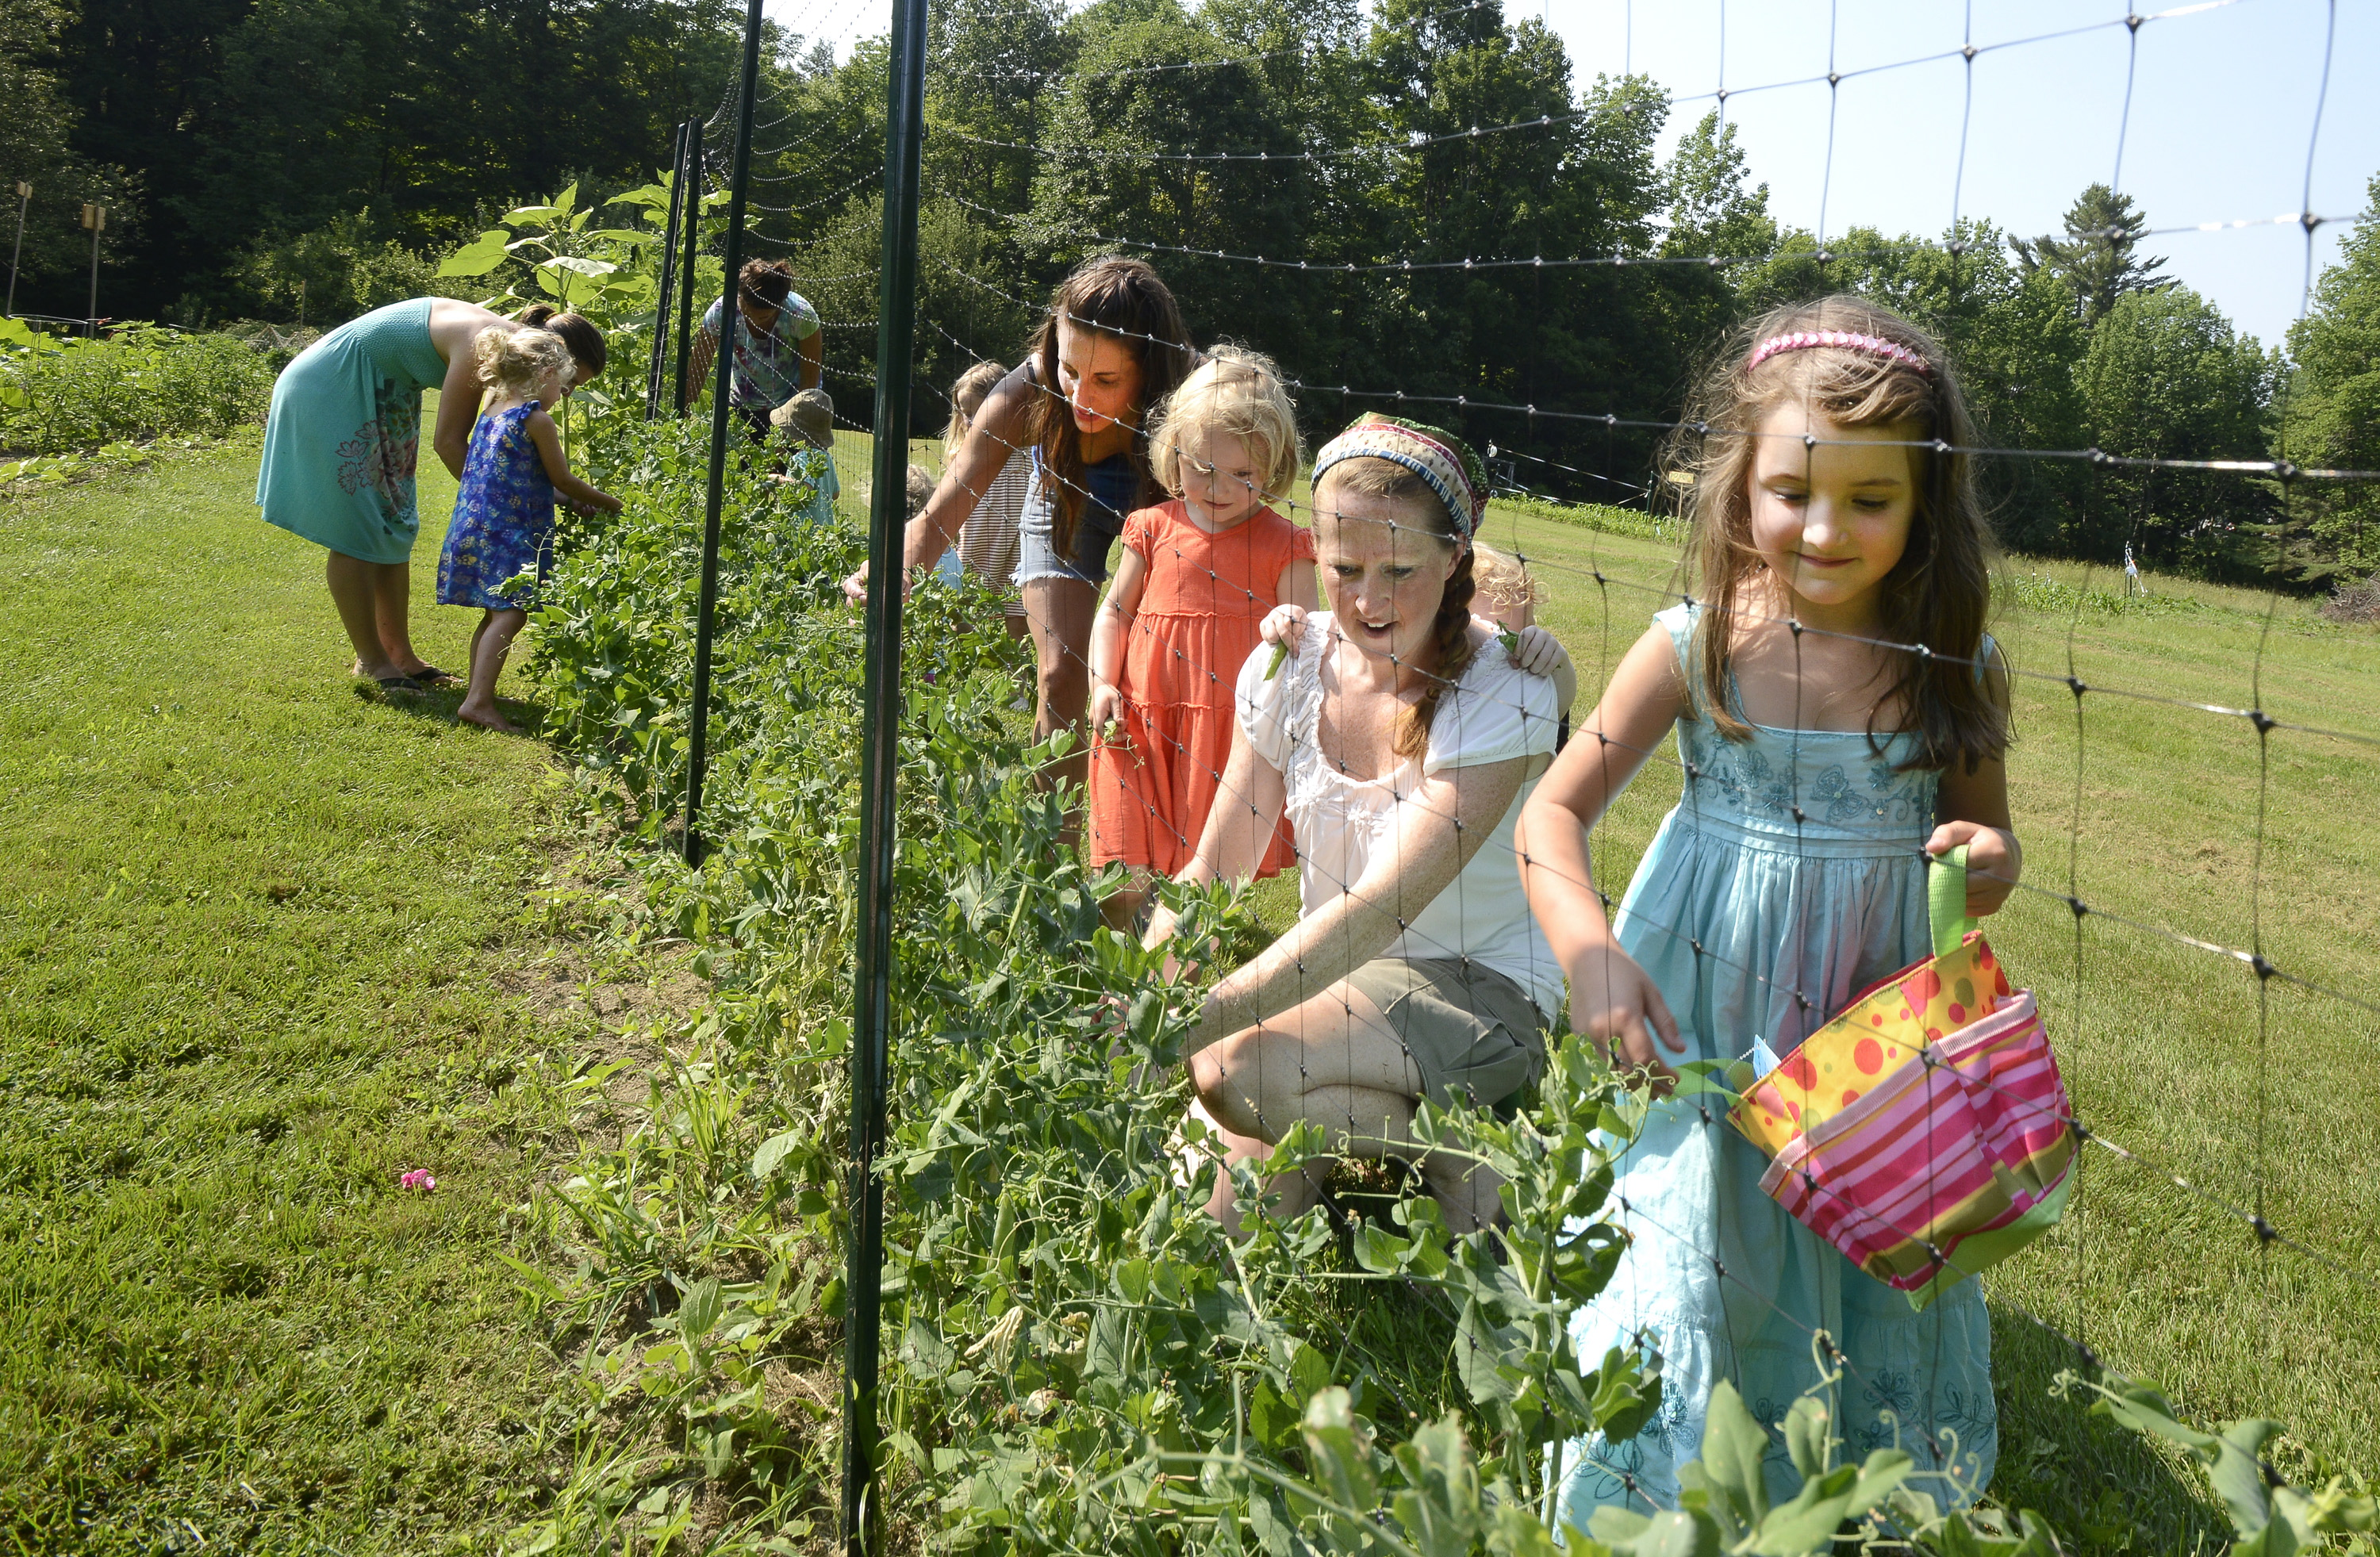 Stephanie O'Neil (in the white shirt) conducts a gardening class for mothers and their children at her farm in West Pownal